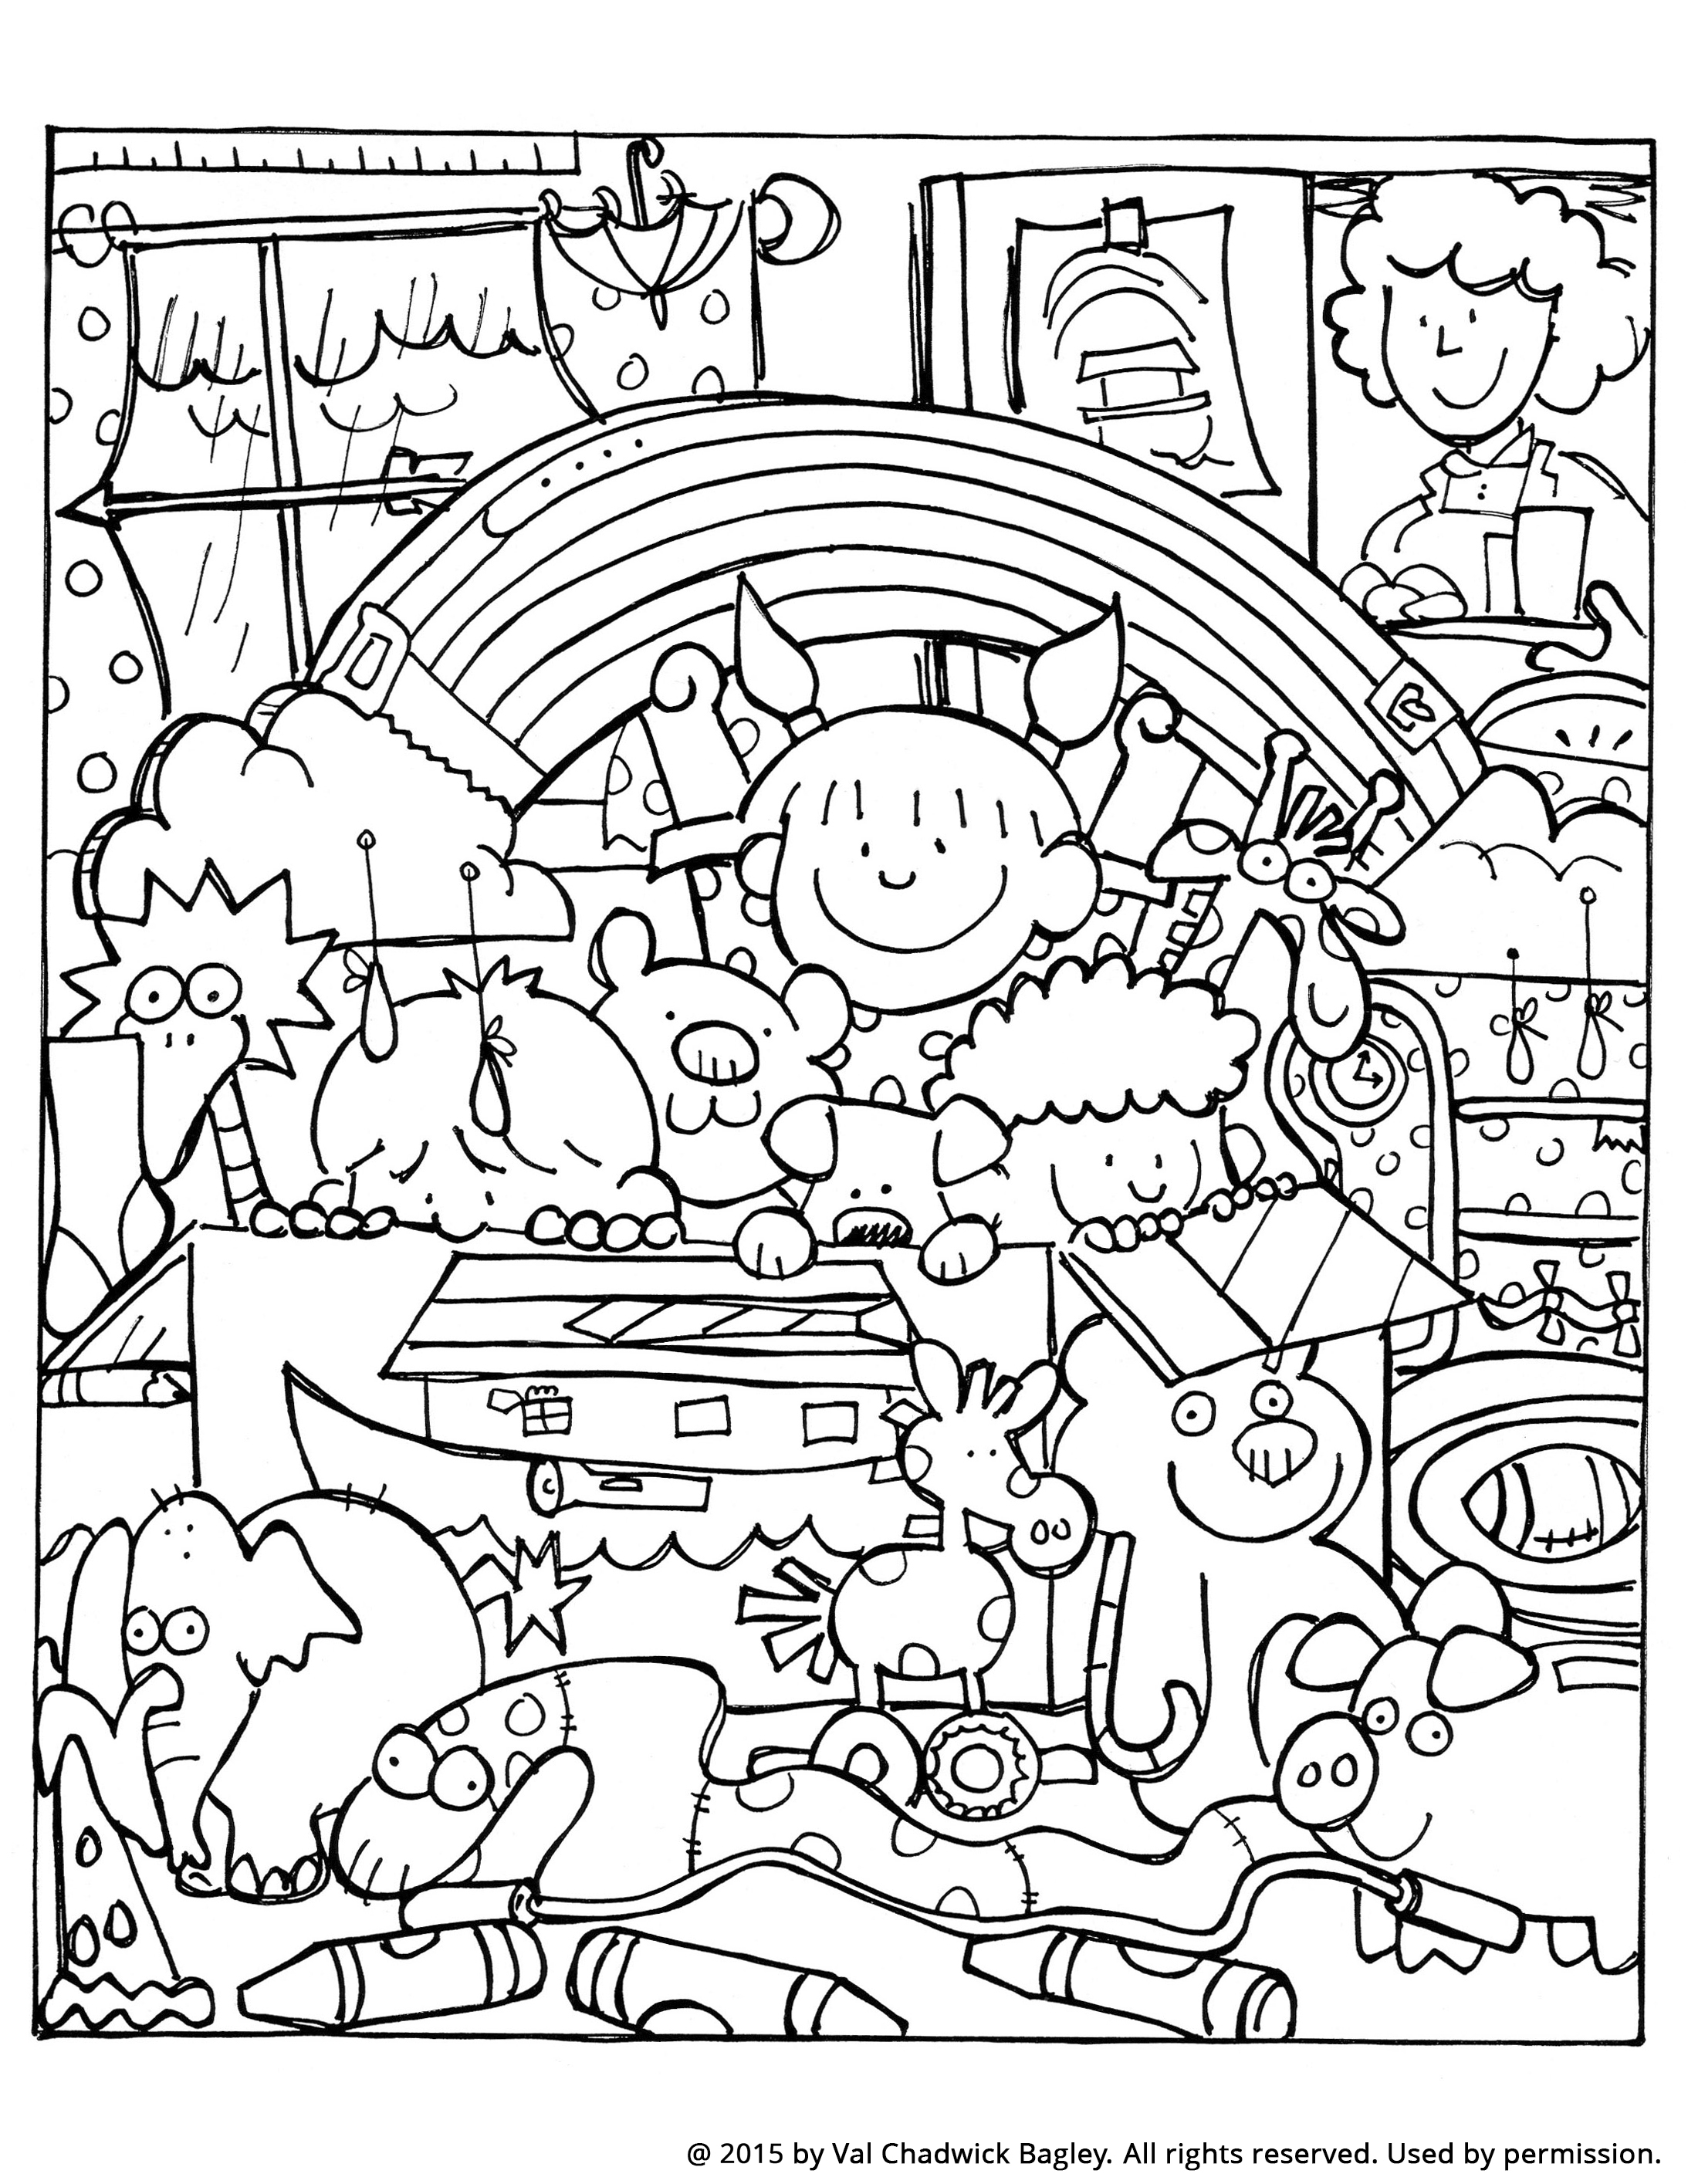 A coloring page of children at home playing Noah and the ark.